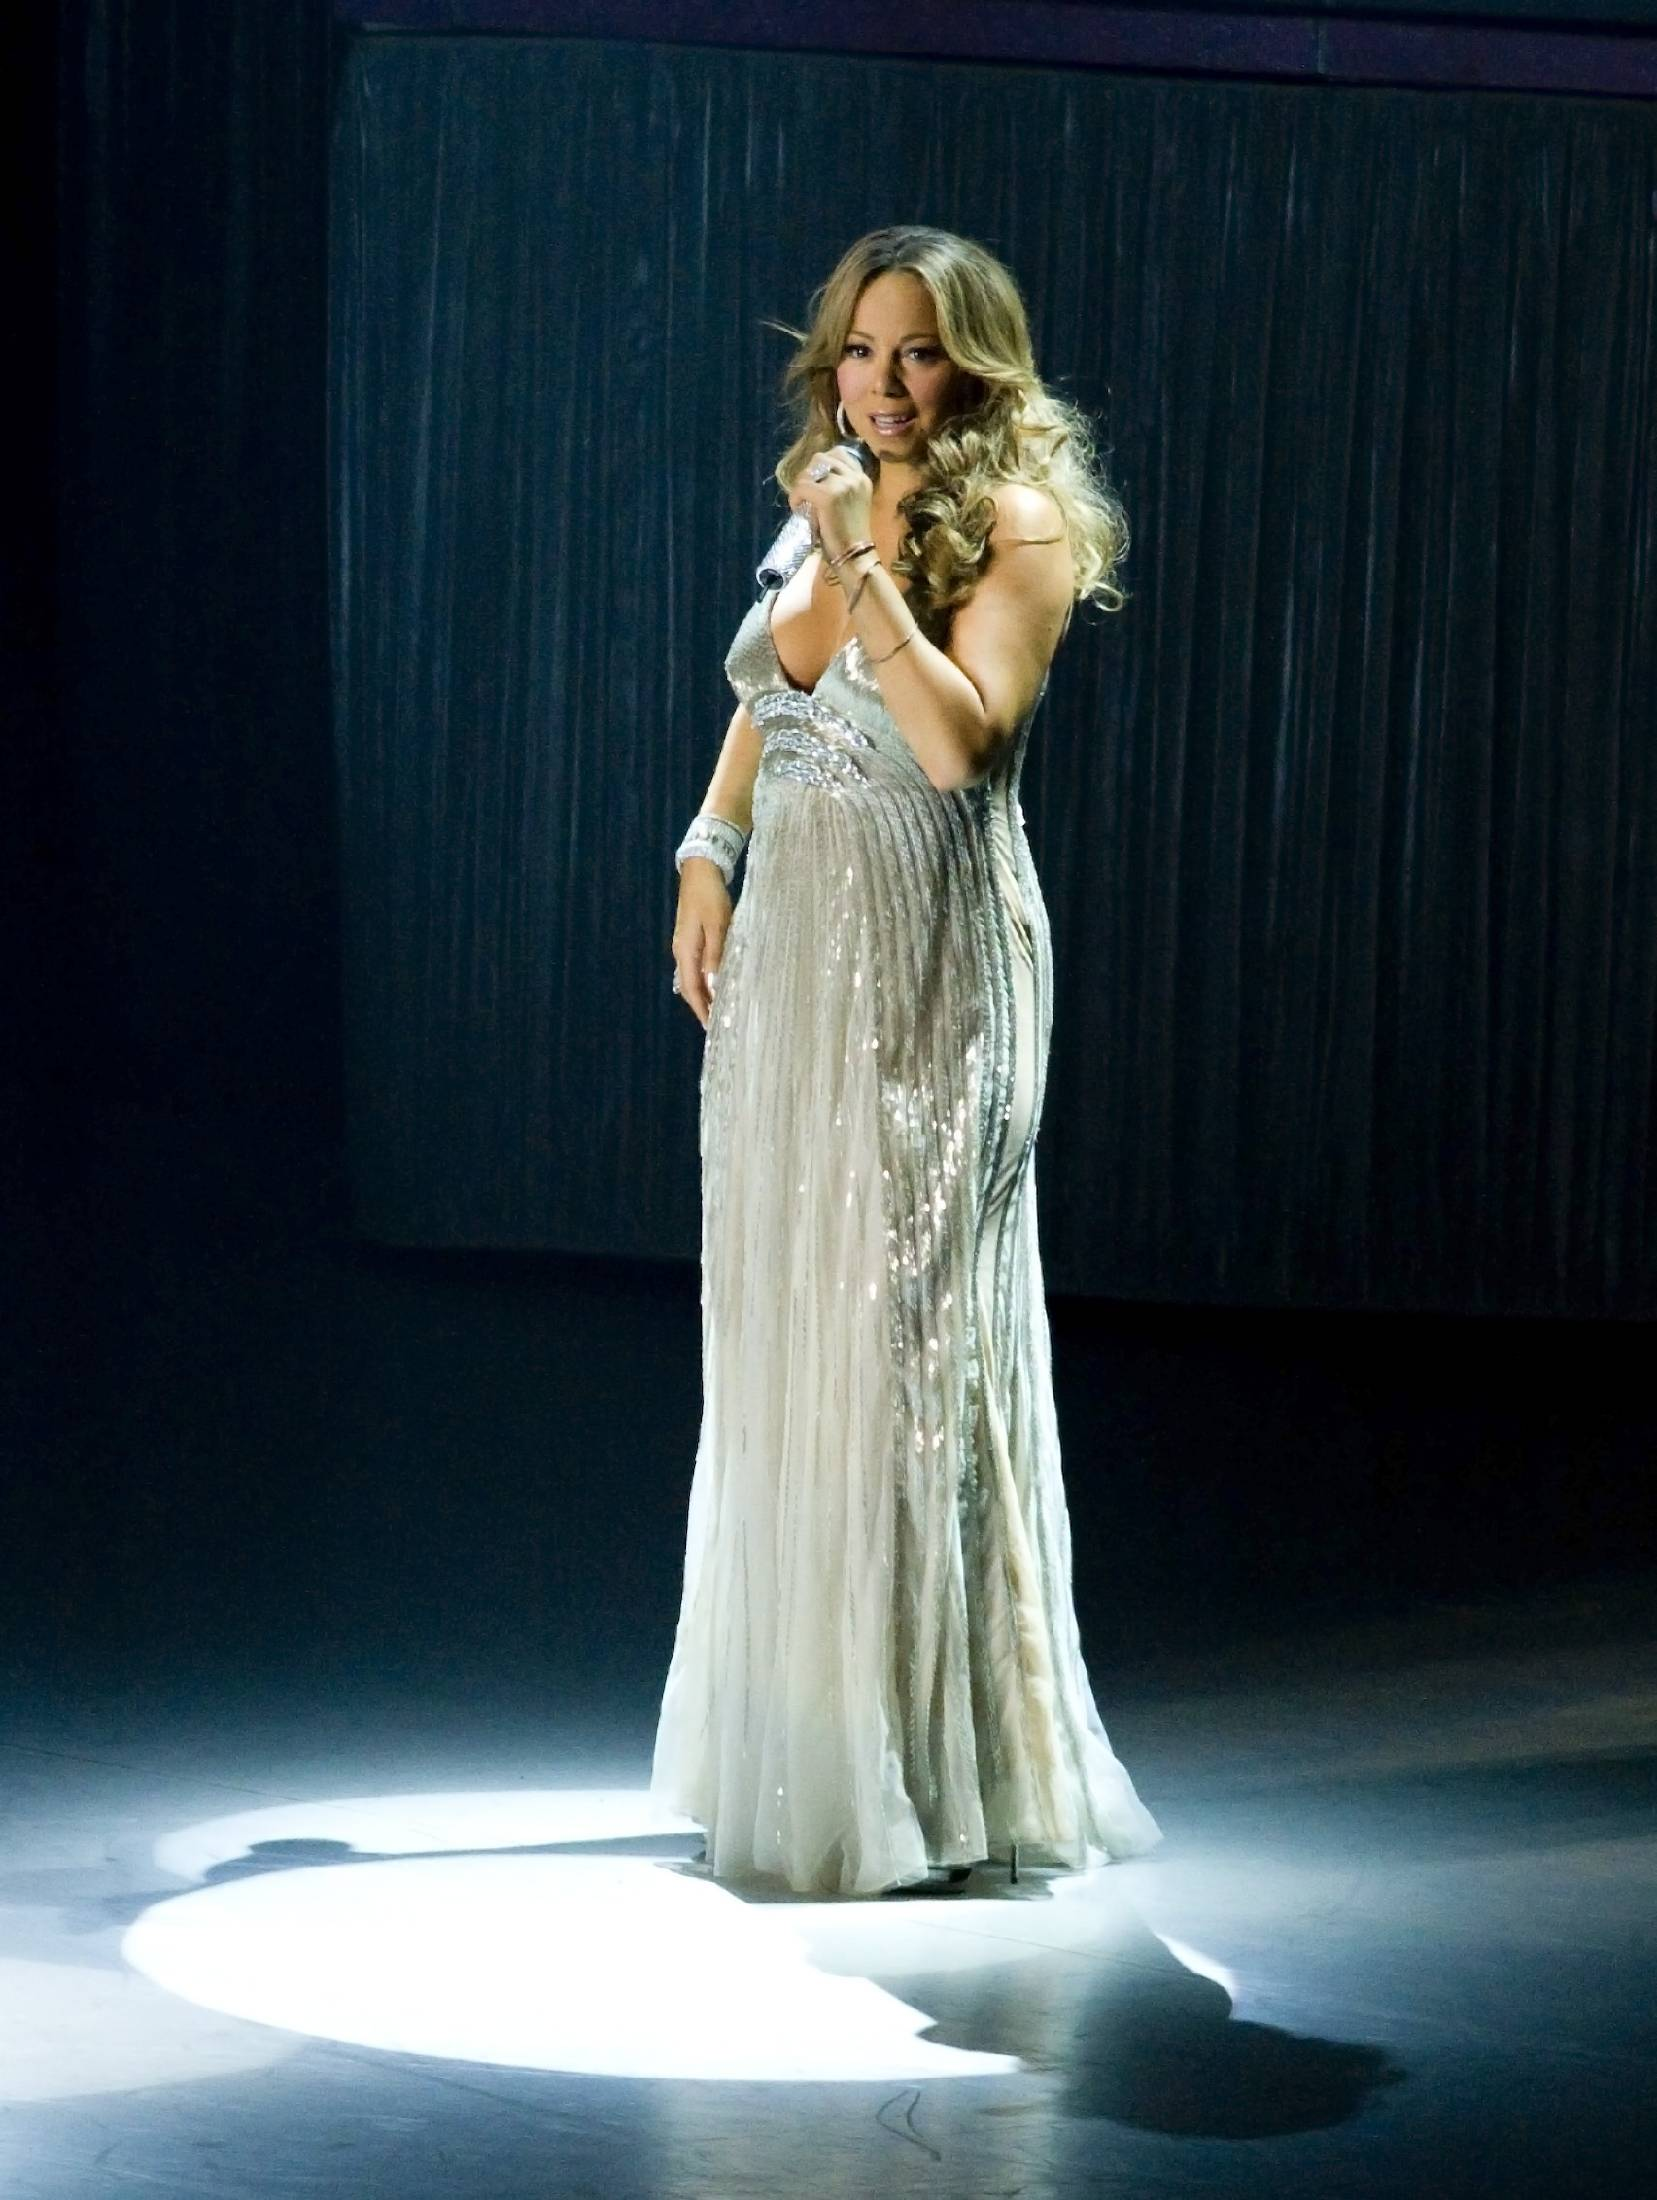 53229_Mariah_Carey_performs_at_Madison_Square_Garden_in_New_York_City-12_122_131lo.jpg